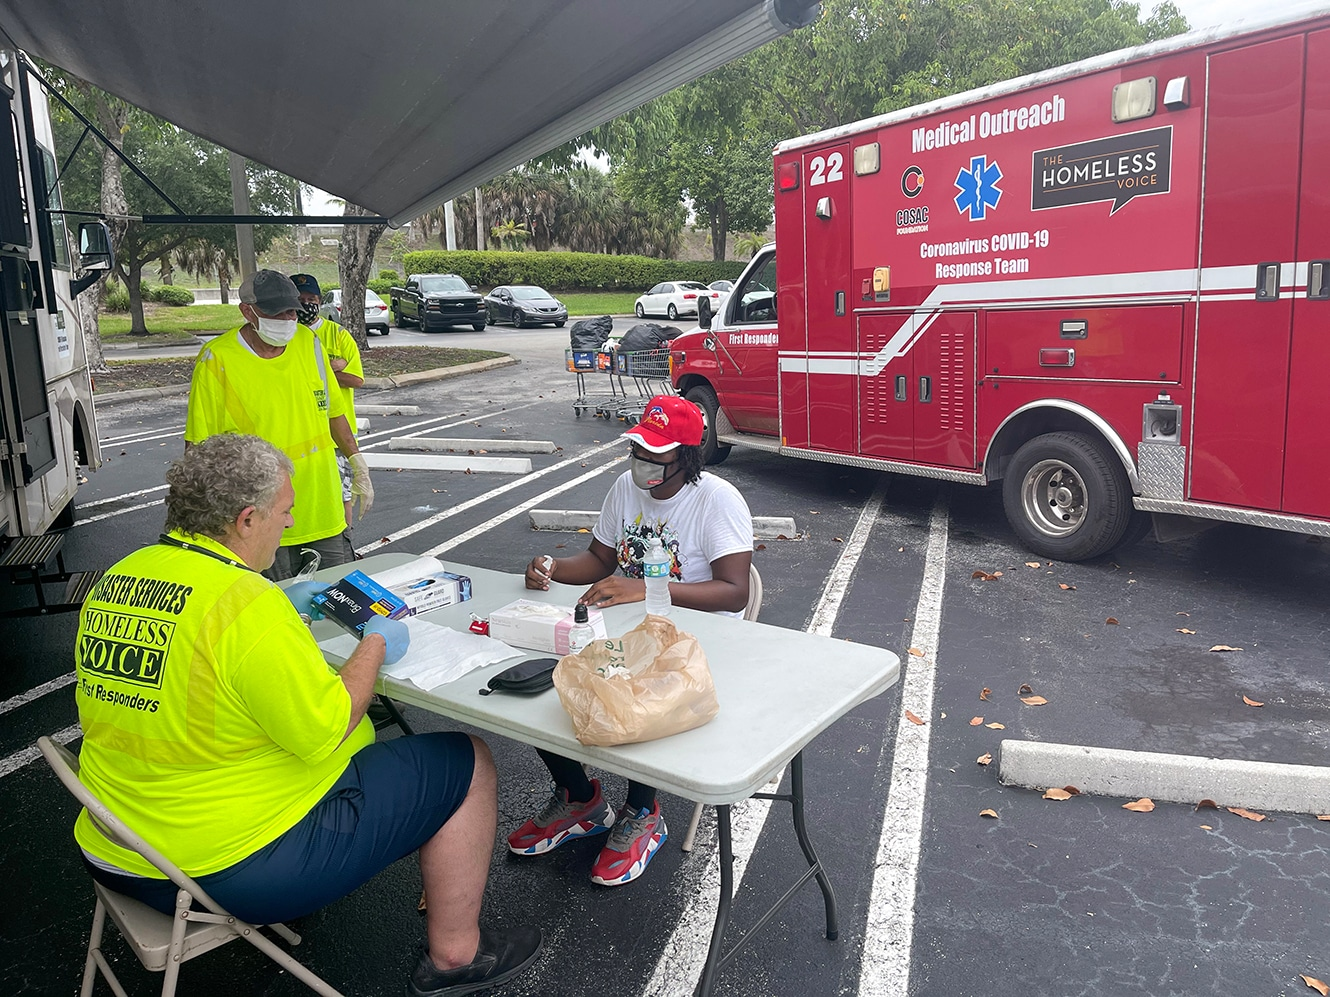 COSAC Foundation Continues to Help the Homeless by Distributing Vaccines